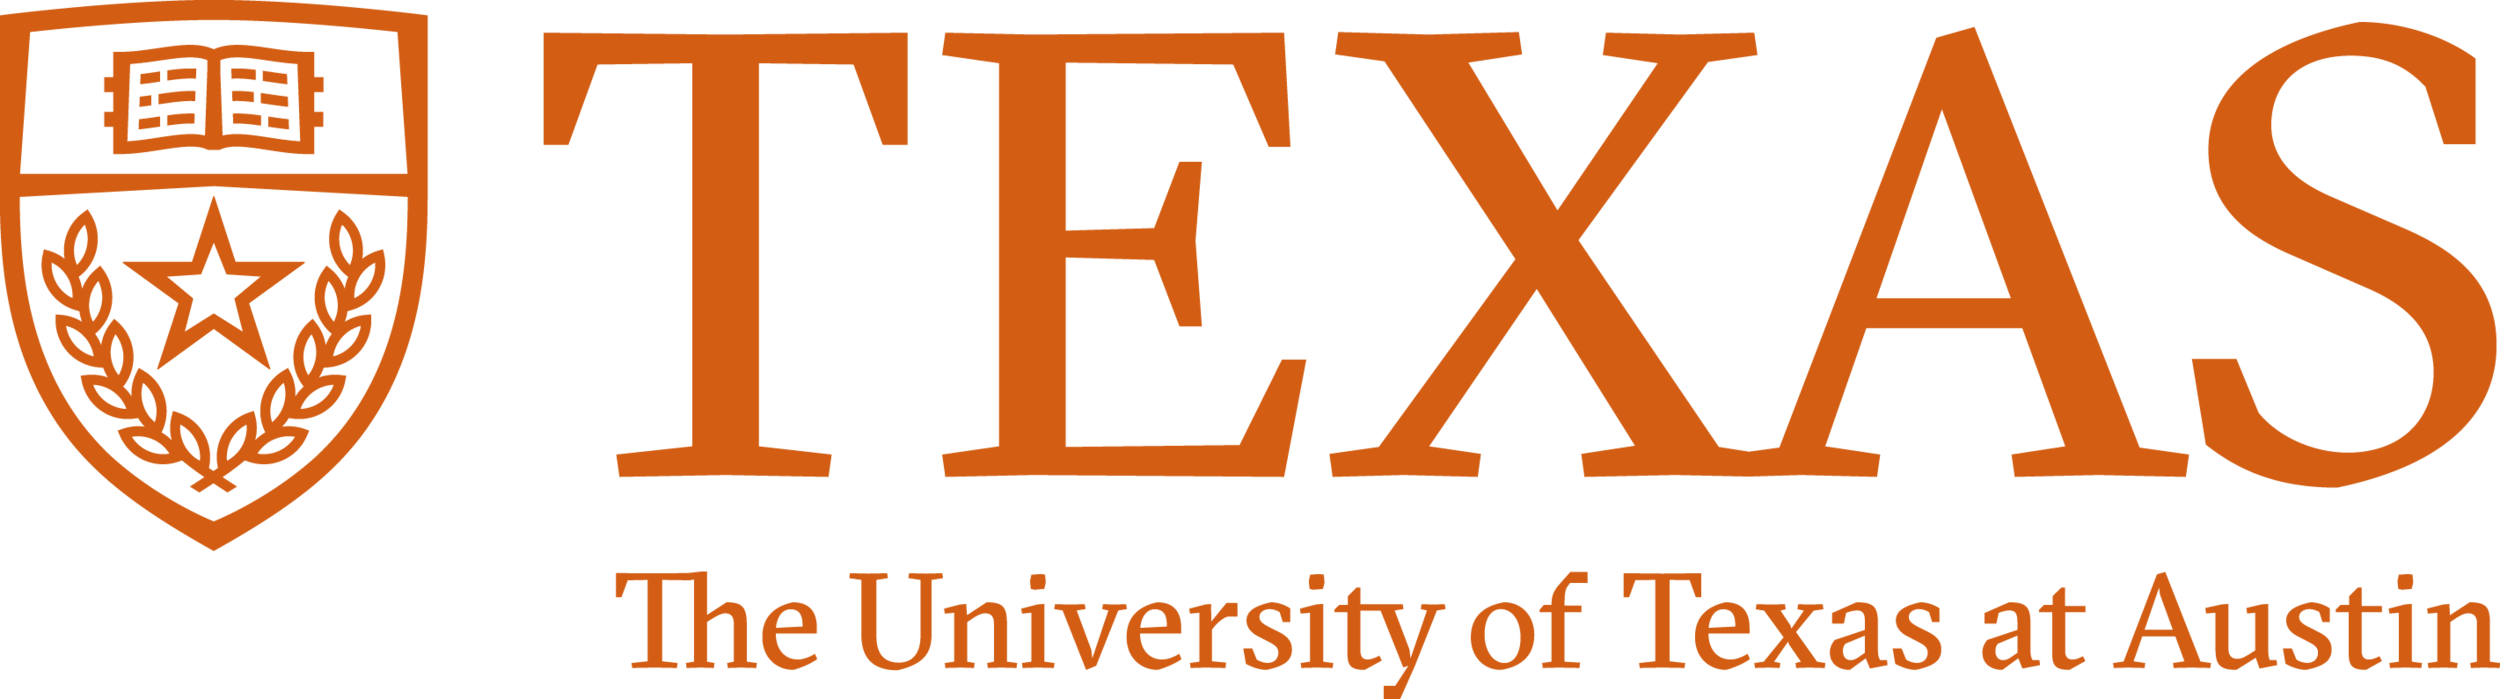 The_University_of_Texas_at_Austin_Lakhani_Coaching_Acceptance_List.png